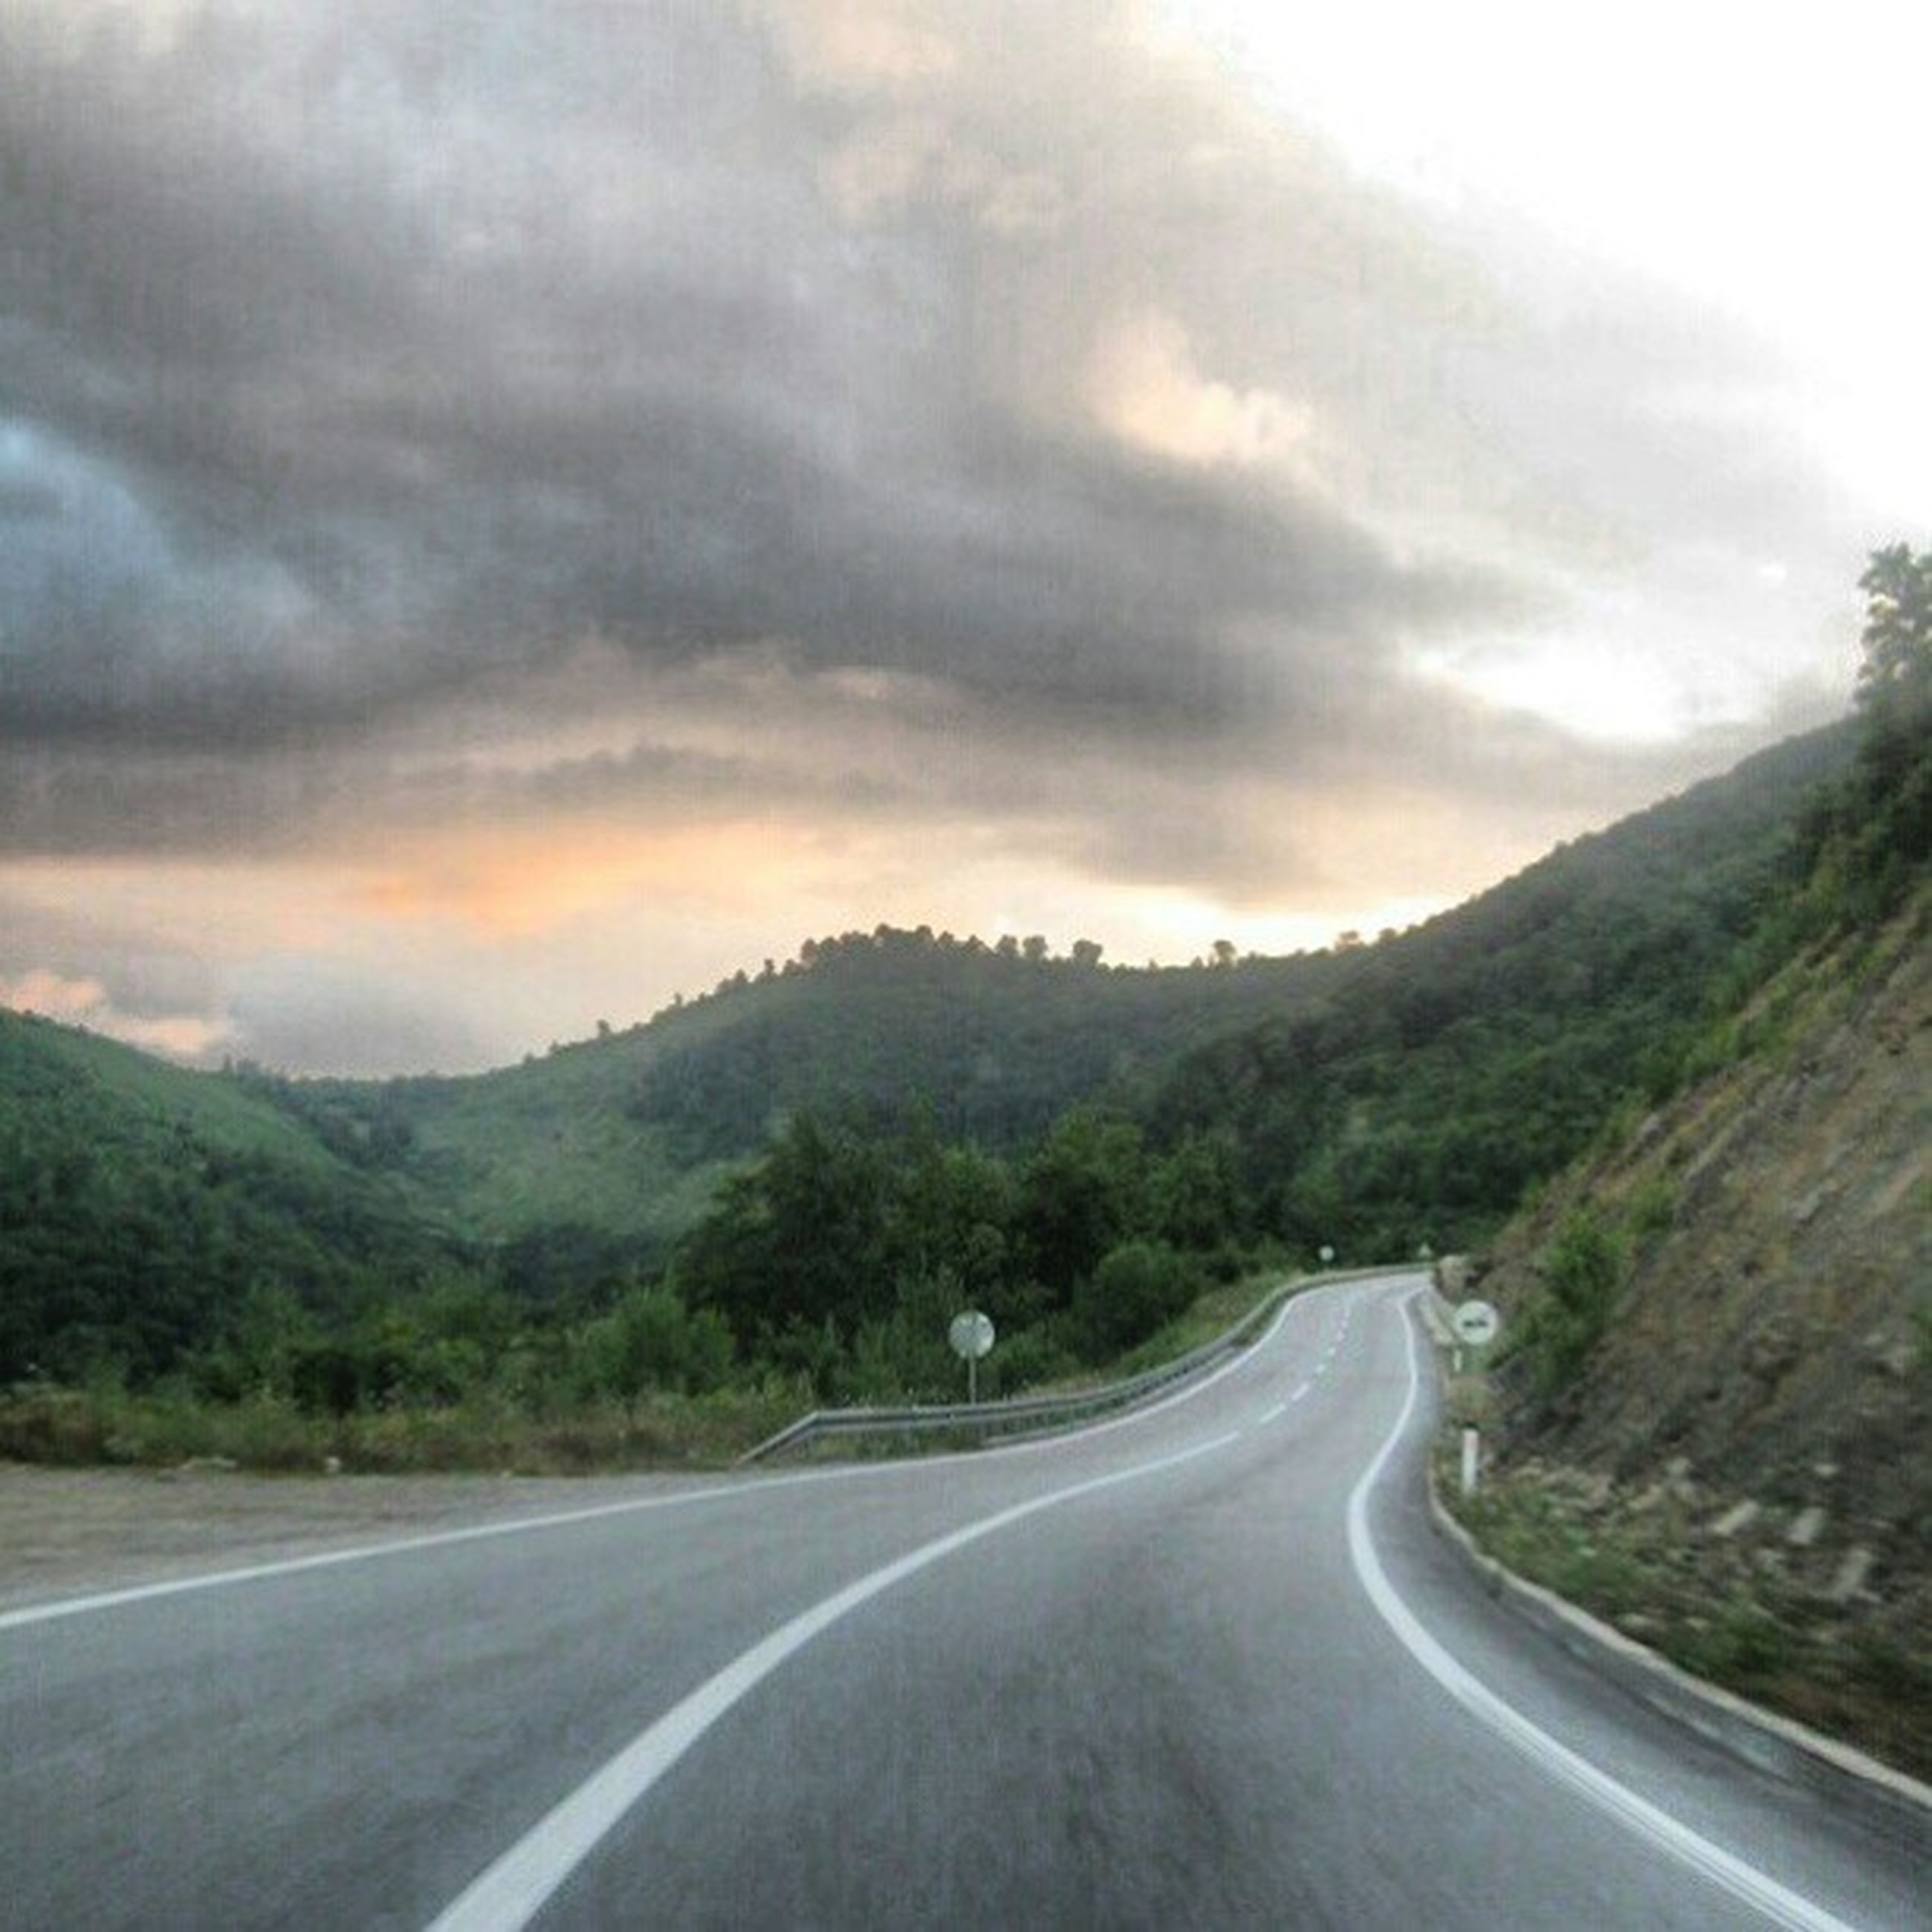 road, the way forward, transportation, mountain, sky, diminishing perspective, country road, road marking, cloud - sky, vanishing point, cloudy, tranquil scene, scenics, tranquility, mountain range, landscape, beauty in nature, nature, empty road, cloud